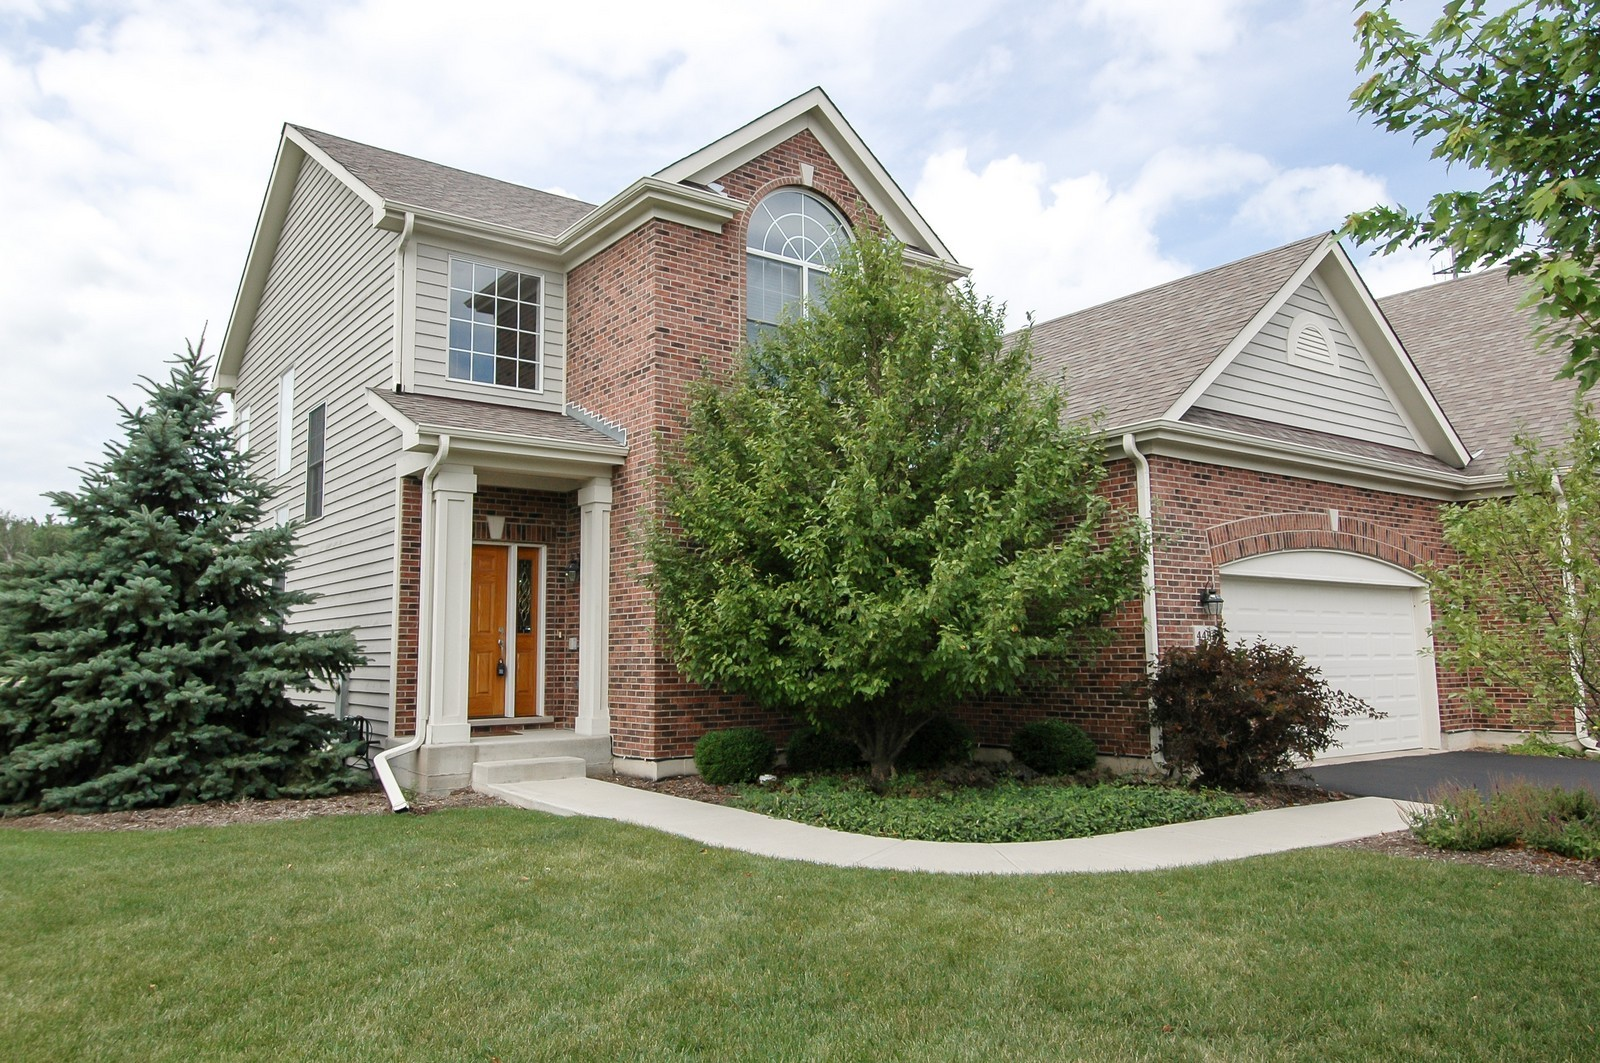 Real Estate Photography - 4435 Coyote Lakes Cir, Lake in the Hills, IL, 60156 - Front View